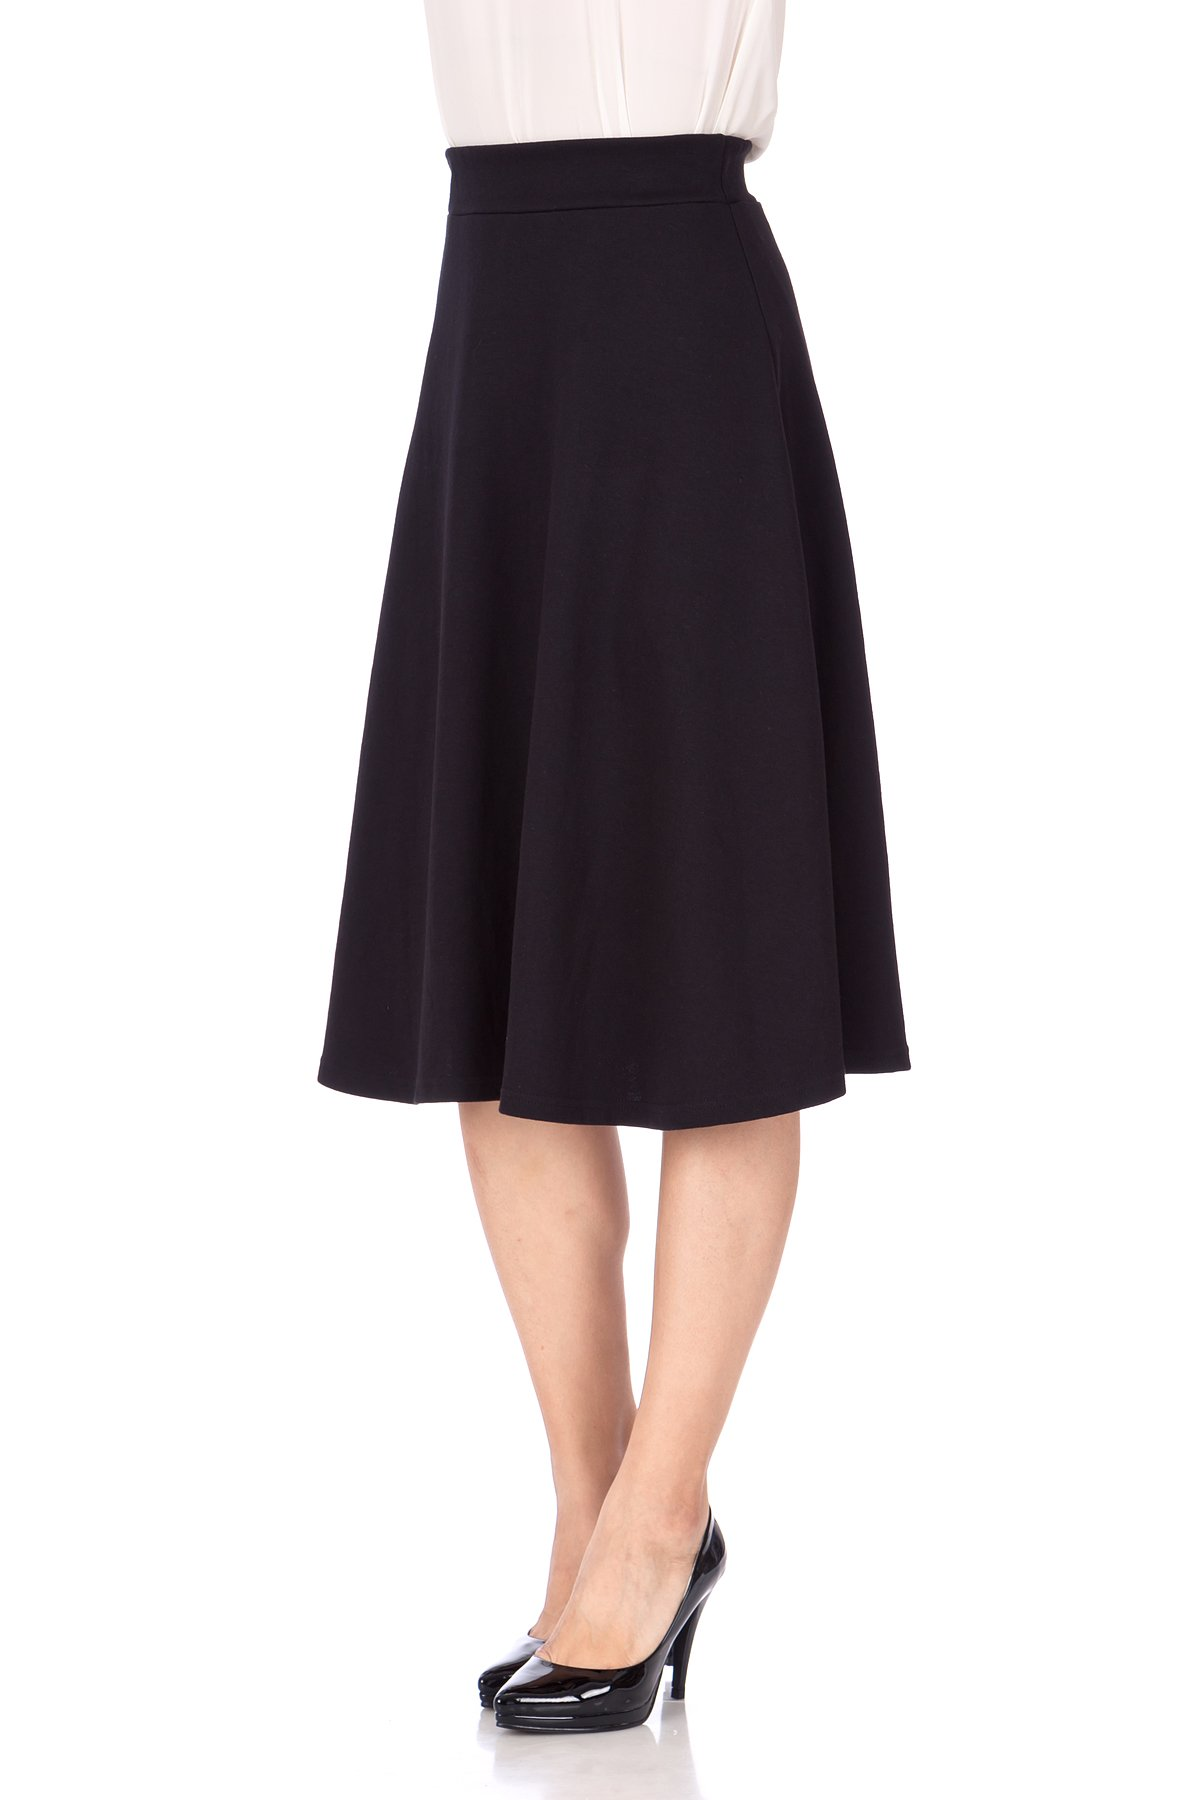 Everyday High Waist A Line Flared Skater Midi Skirt Black 06